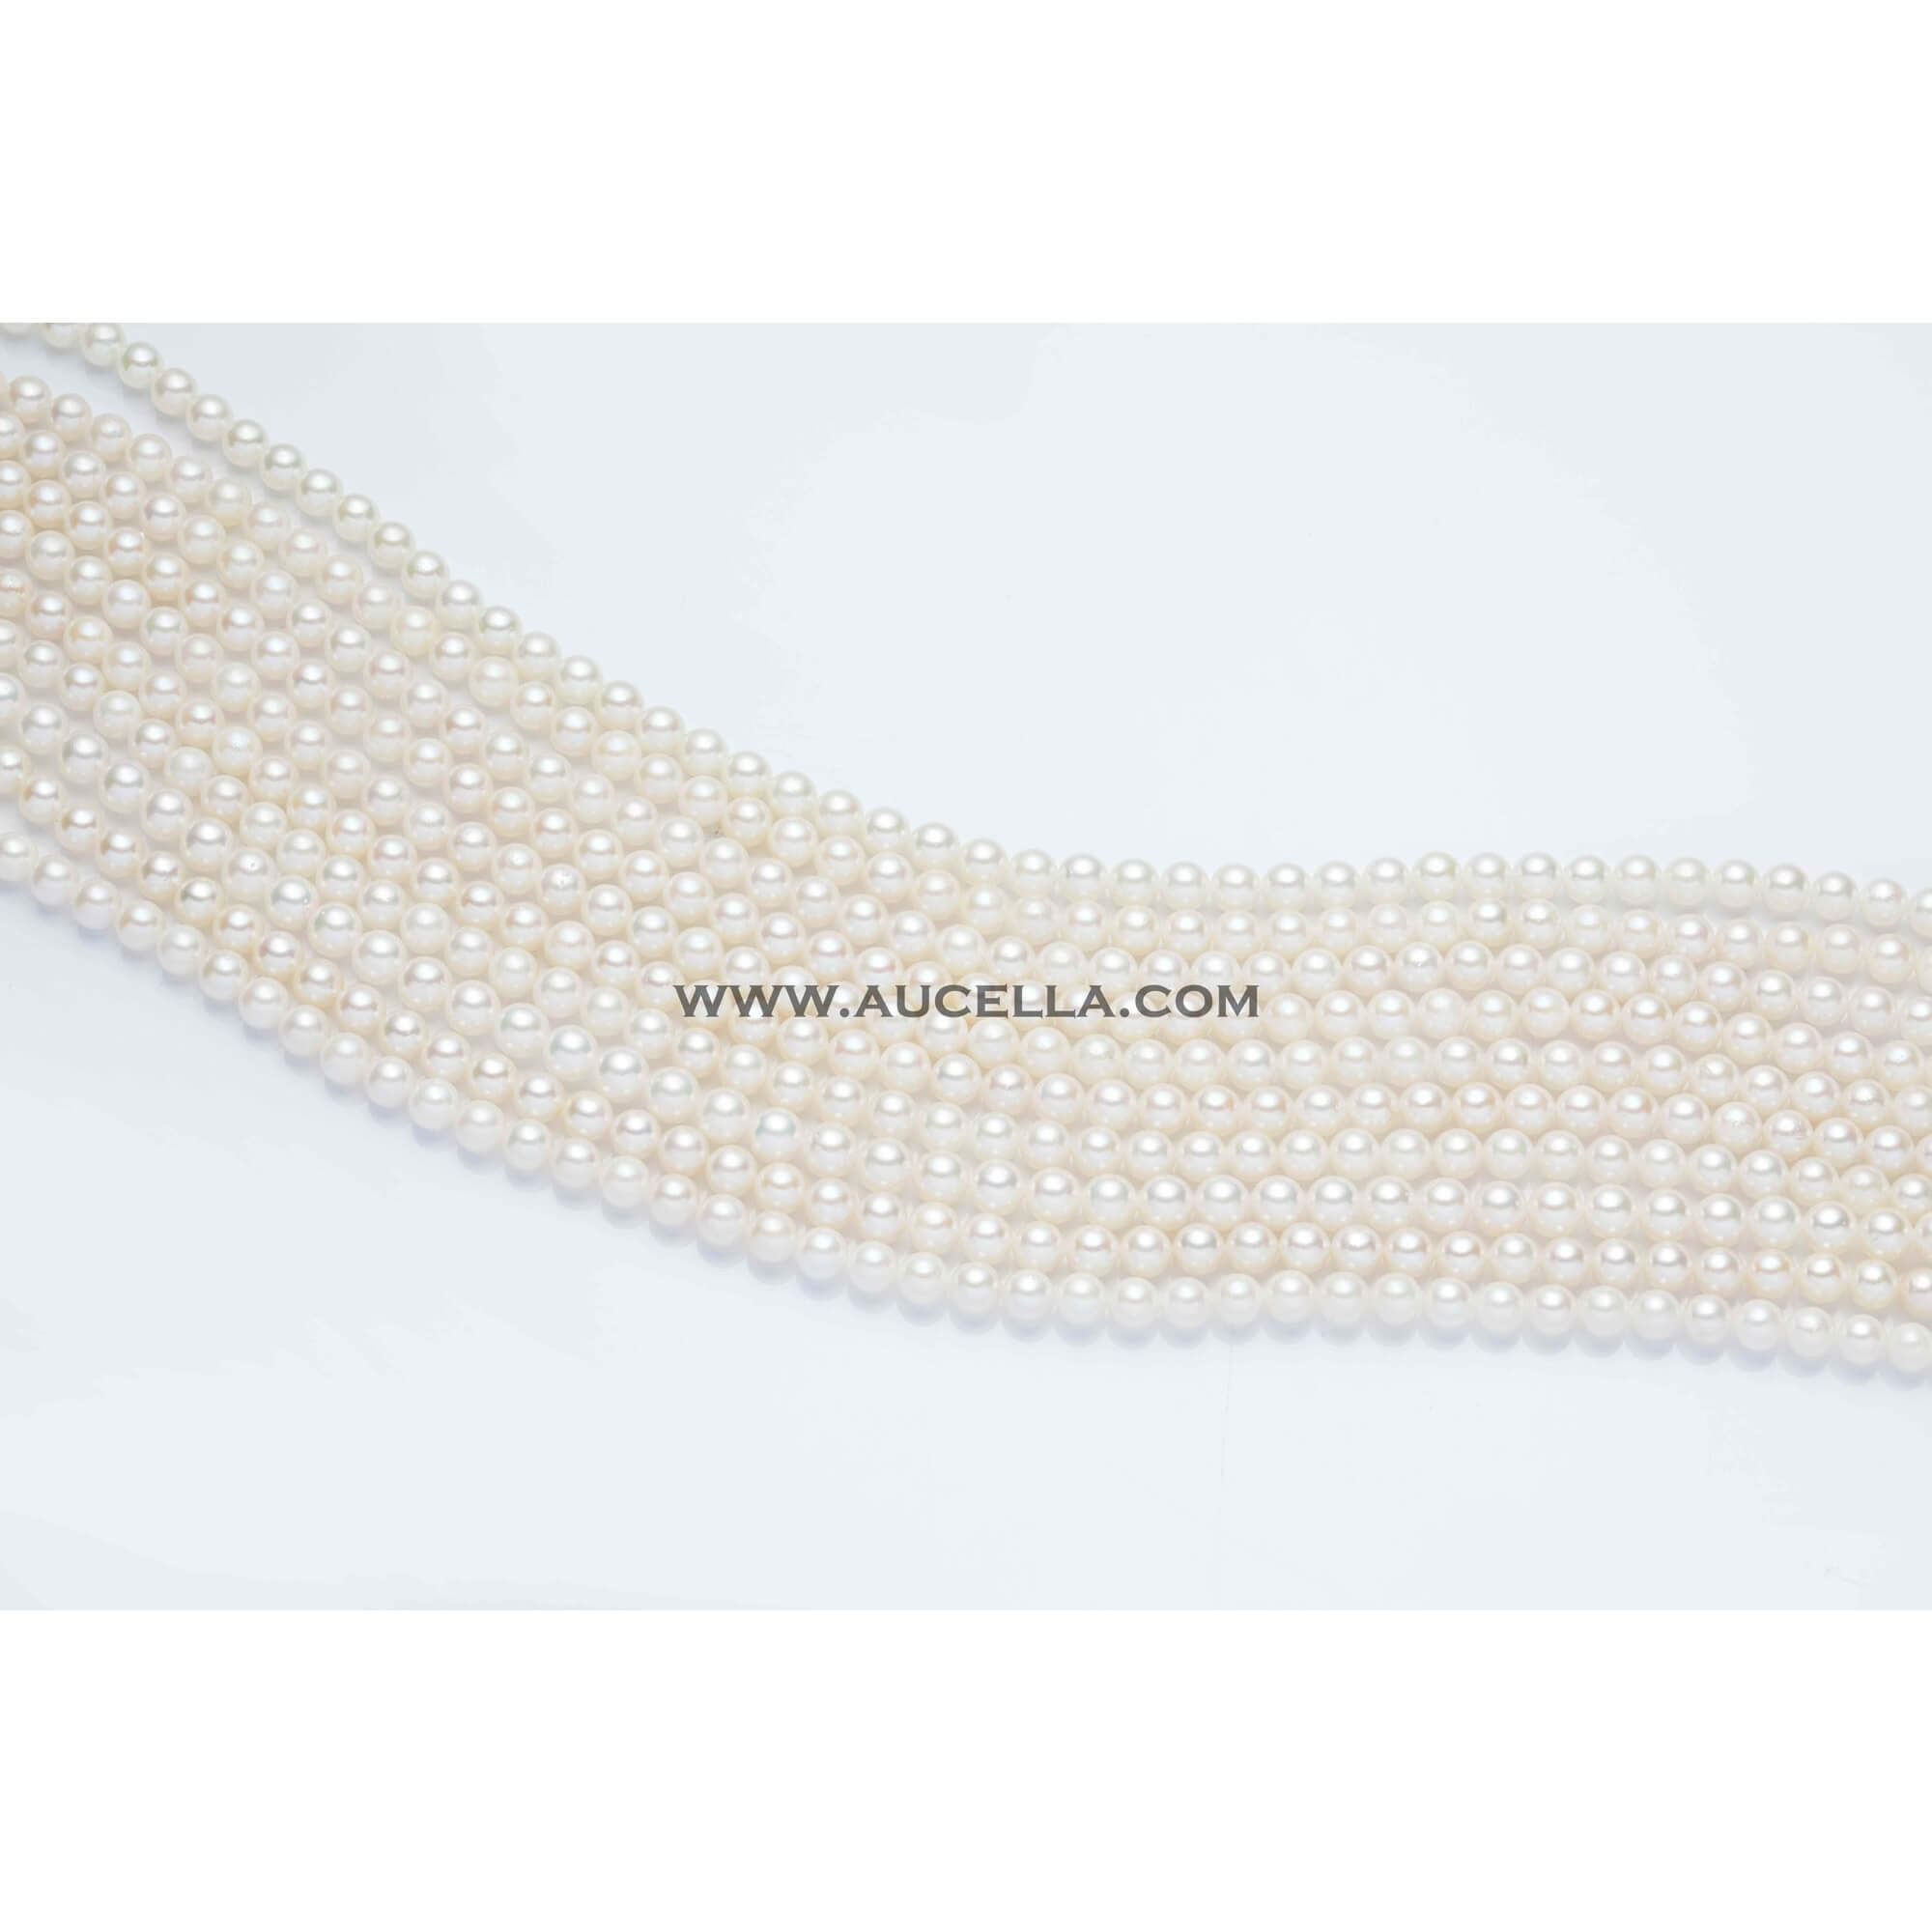 Japan akoya pearls, size 5 - 5,5 mm